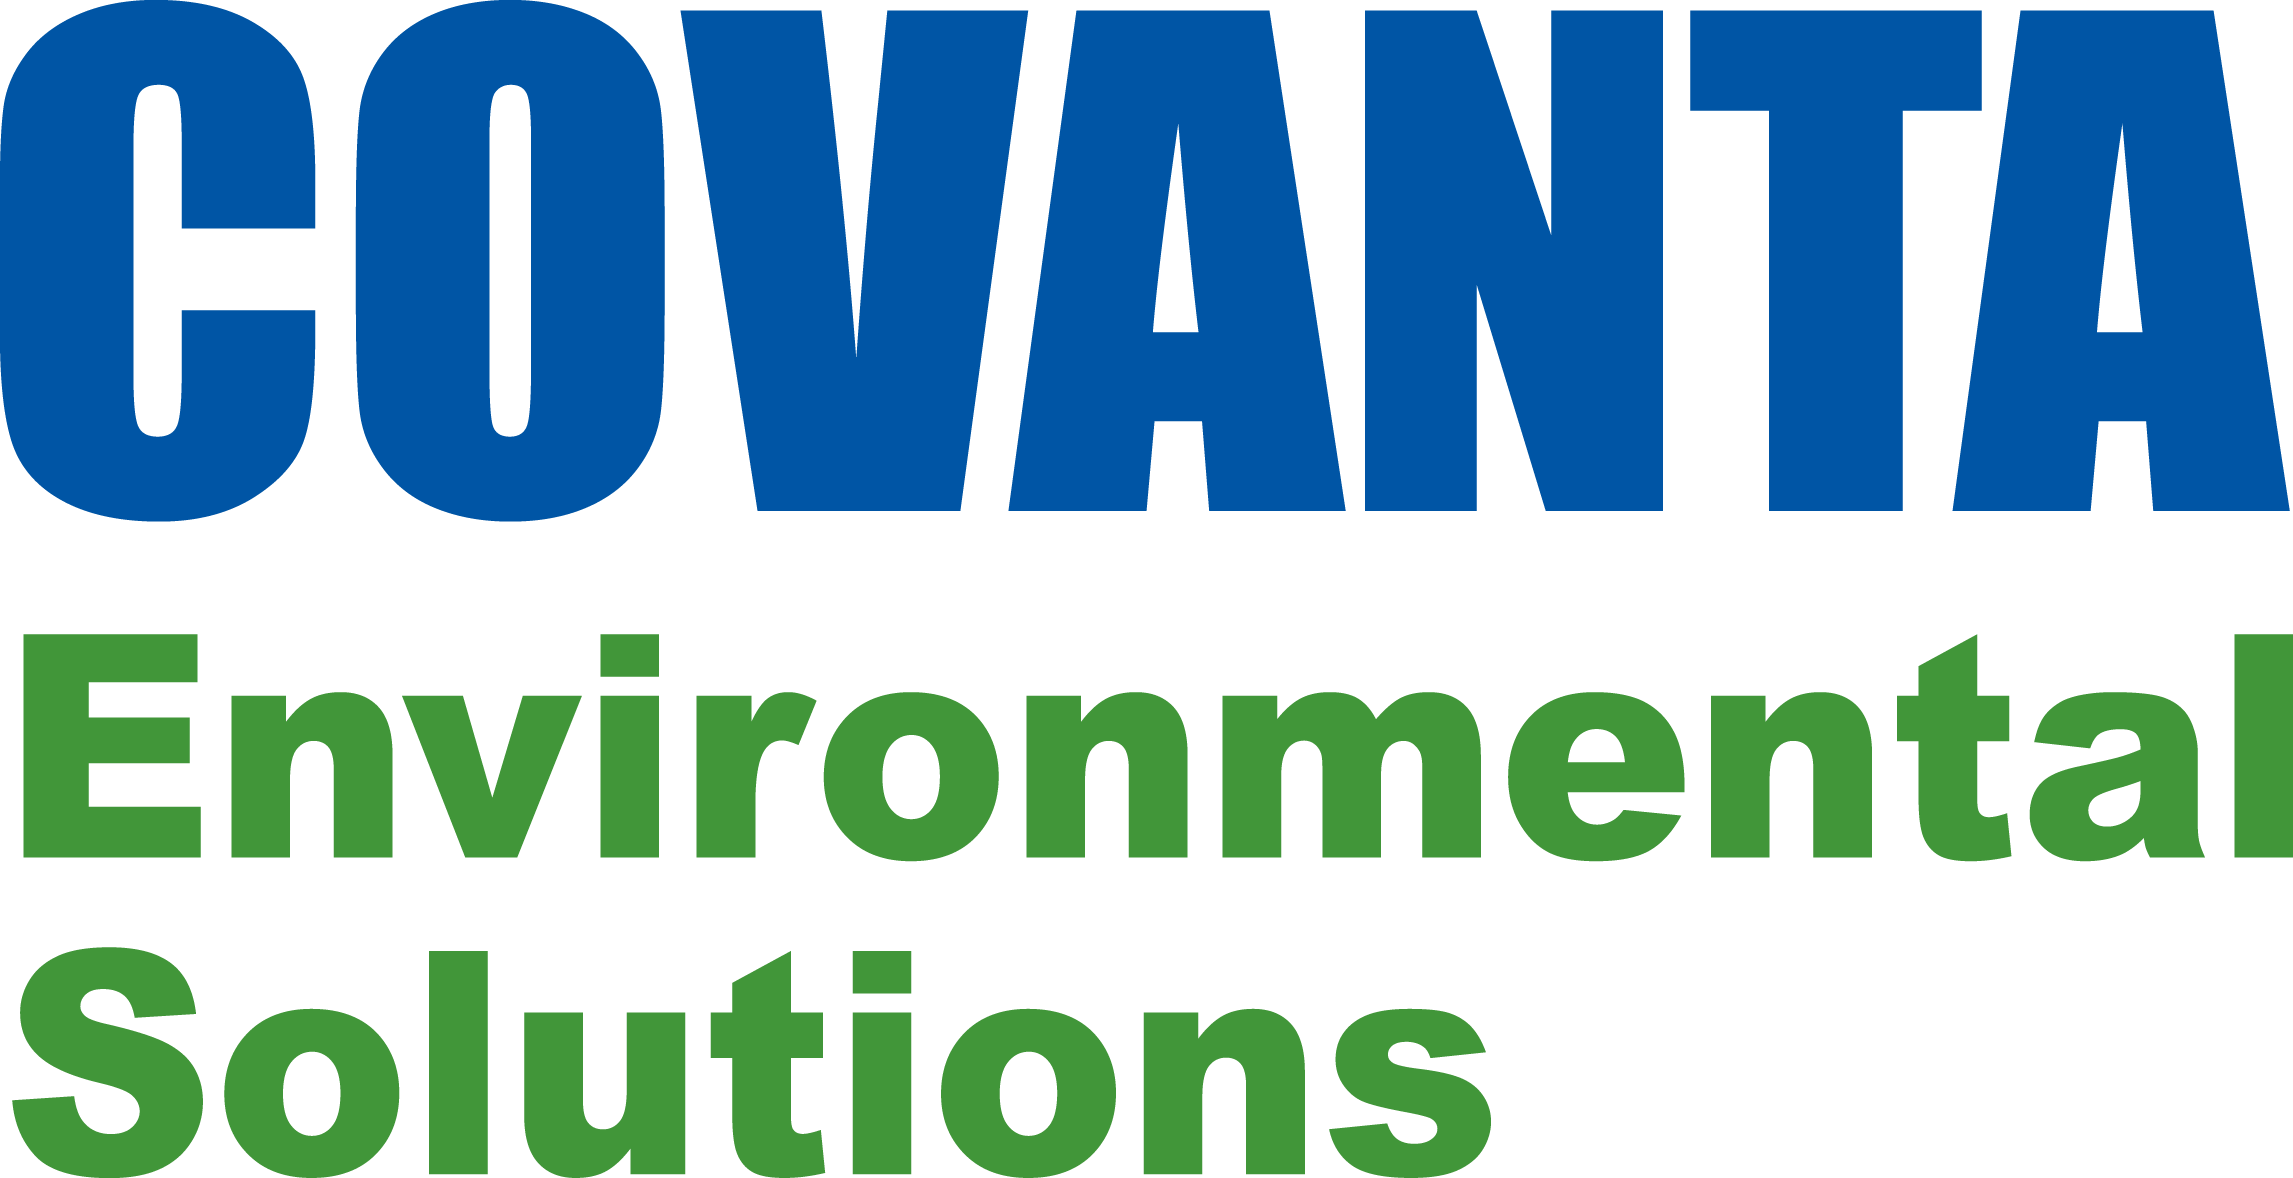 covanta environmental solutions logo